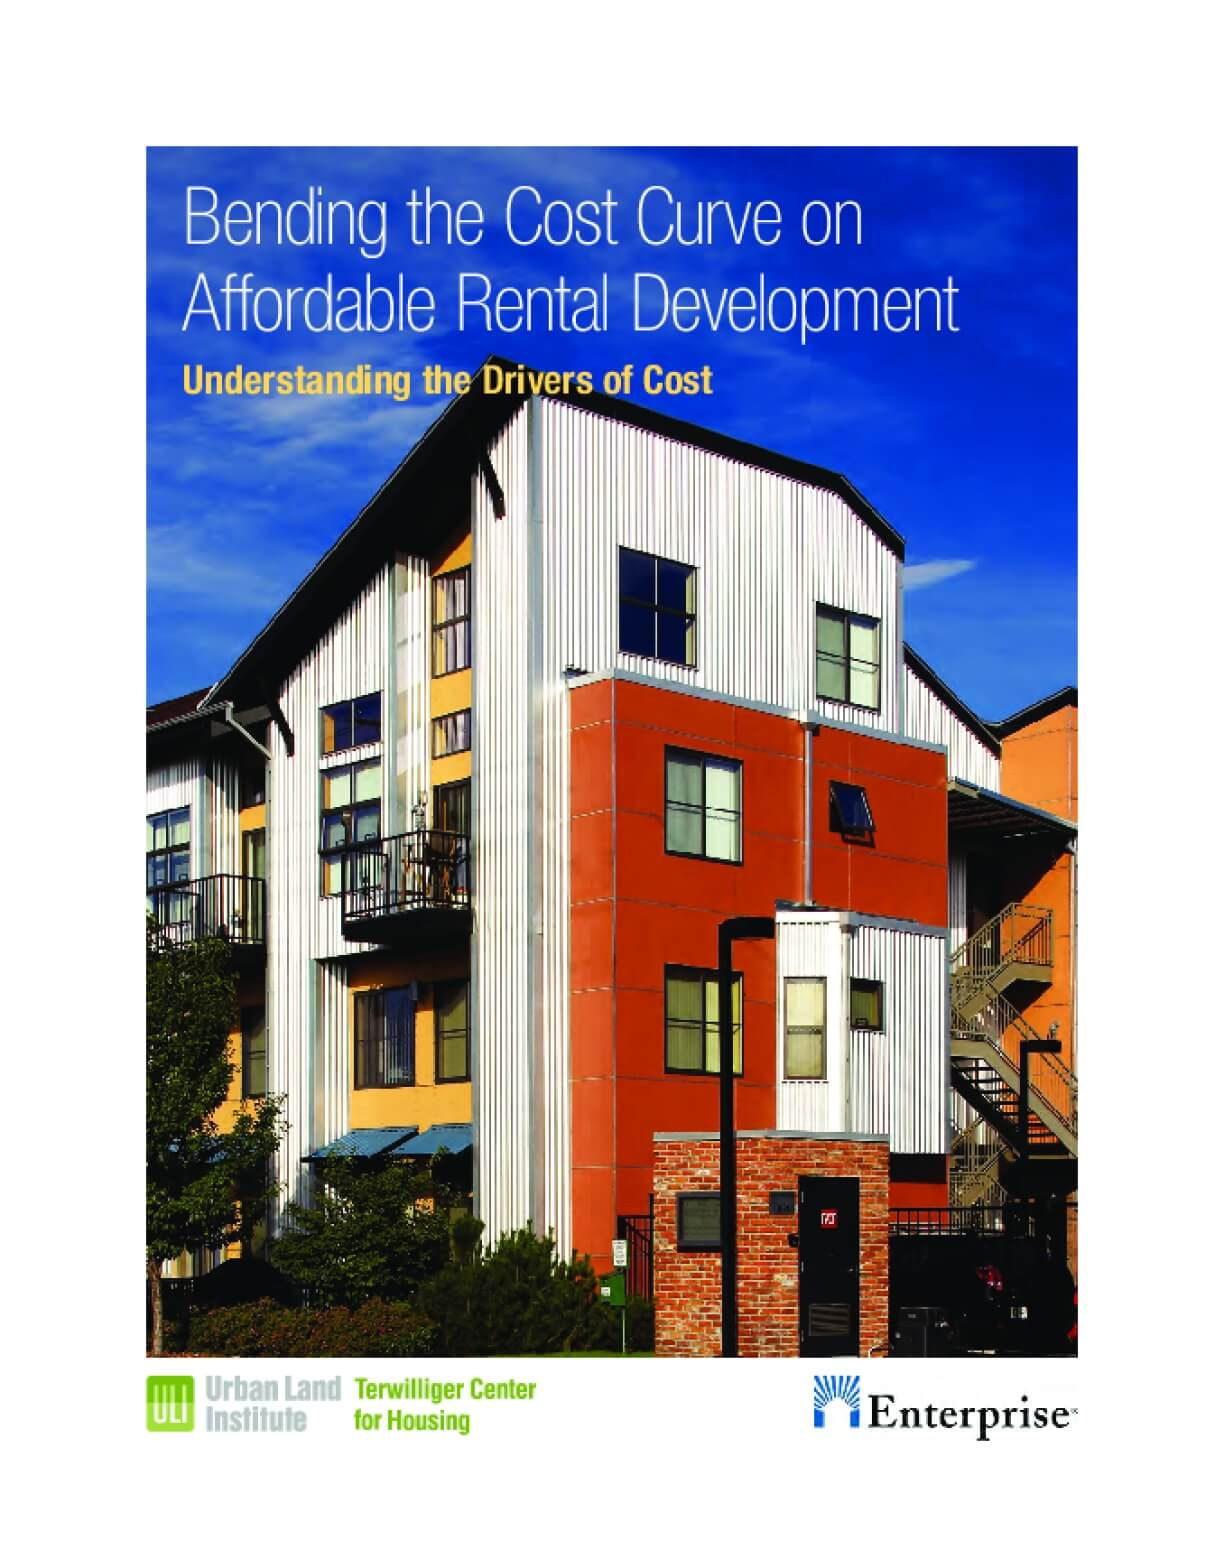 Bending the Cost Curve on Affordable Rental Development: Understanding the Drivers of Cost